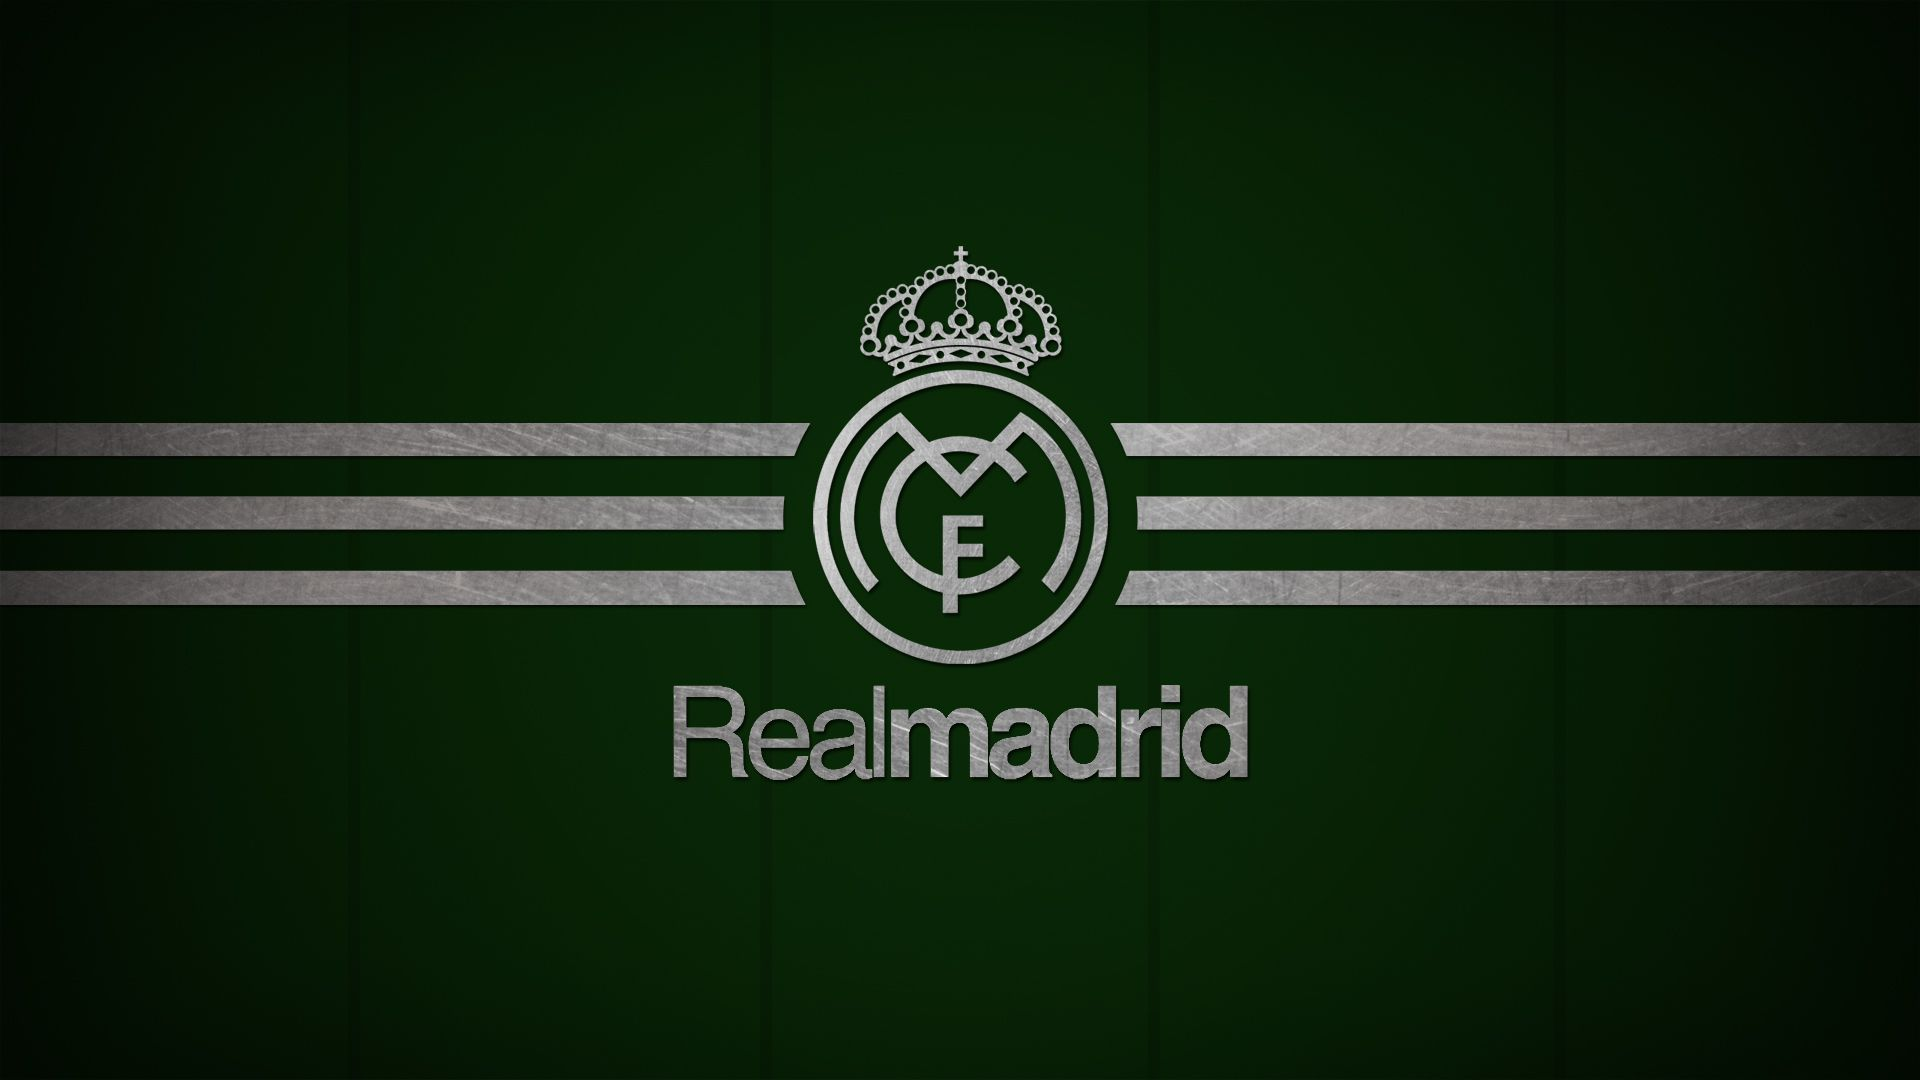 madrid wallpaper hd 800a—500 realmadrid wallpaper 48 wallpapers adorable wallpapers